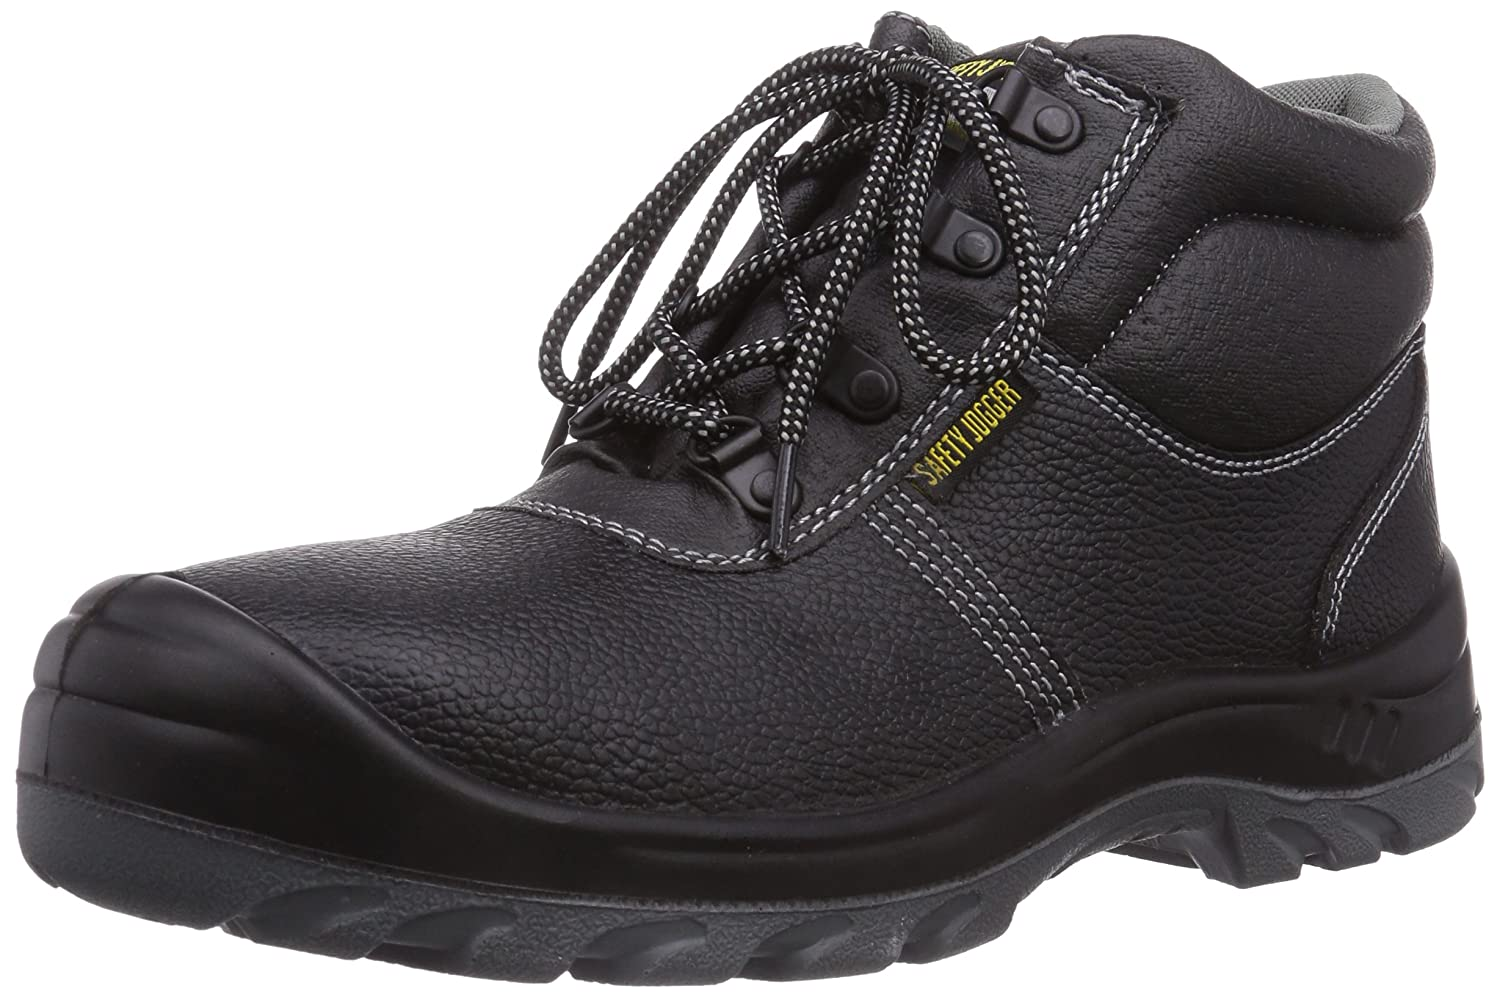 Safety Jogger Unisex-Adult Bestboy Safety Shoes Black 35 EU ...